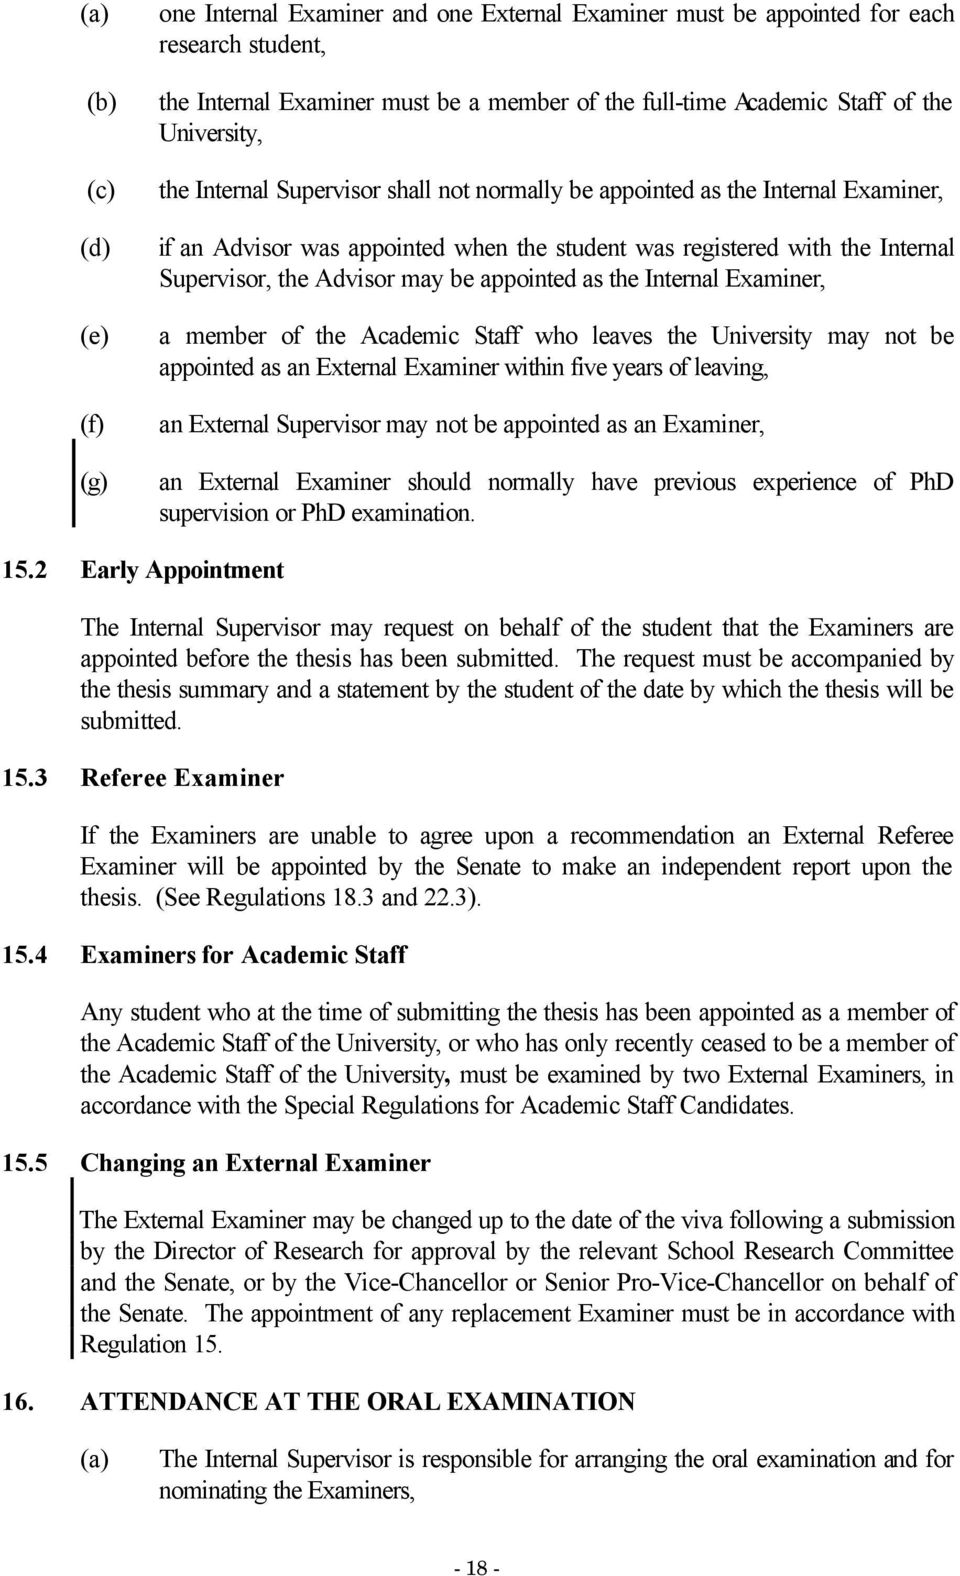 the Internal Examiner, a member of the Academic Staff who leaves the University may not be appointed as an External Examiner within five years of leaving, an External Supervisor may not be appointed